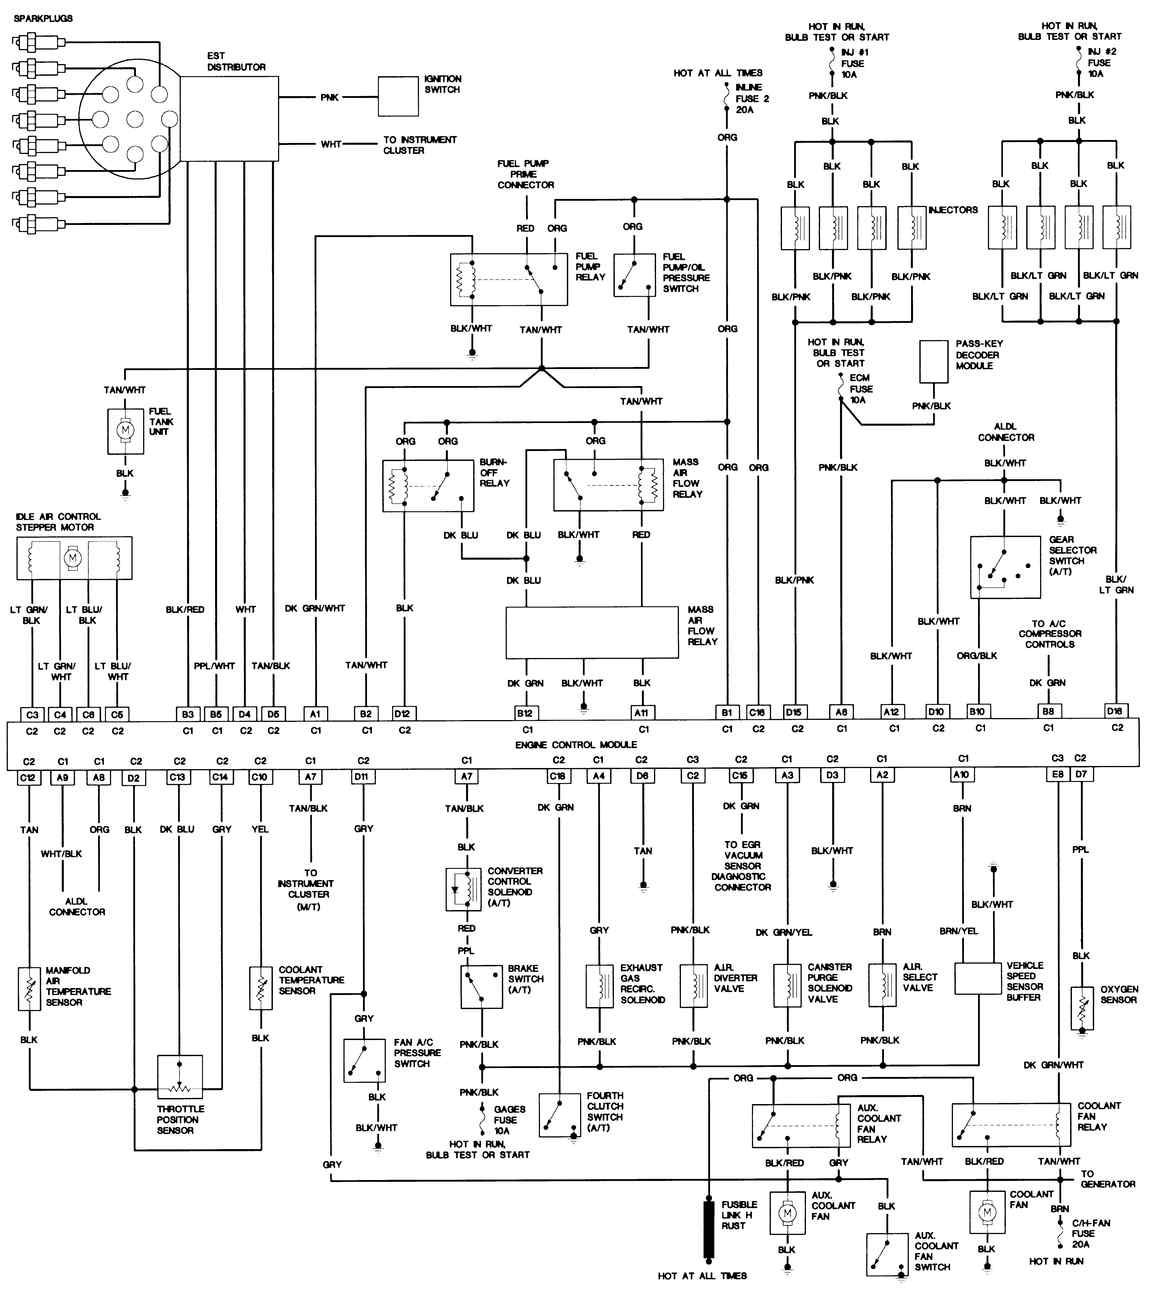 [DIAGRAM] 67 Firebird Wiring Diagram FULL Version HD